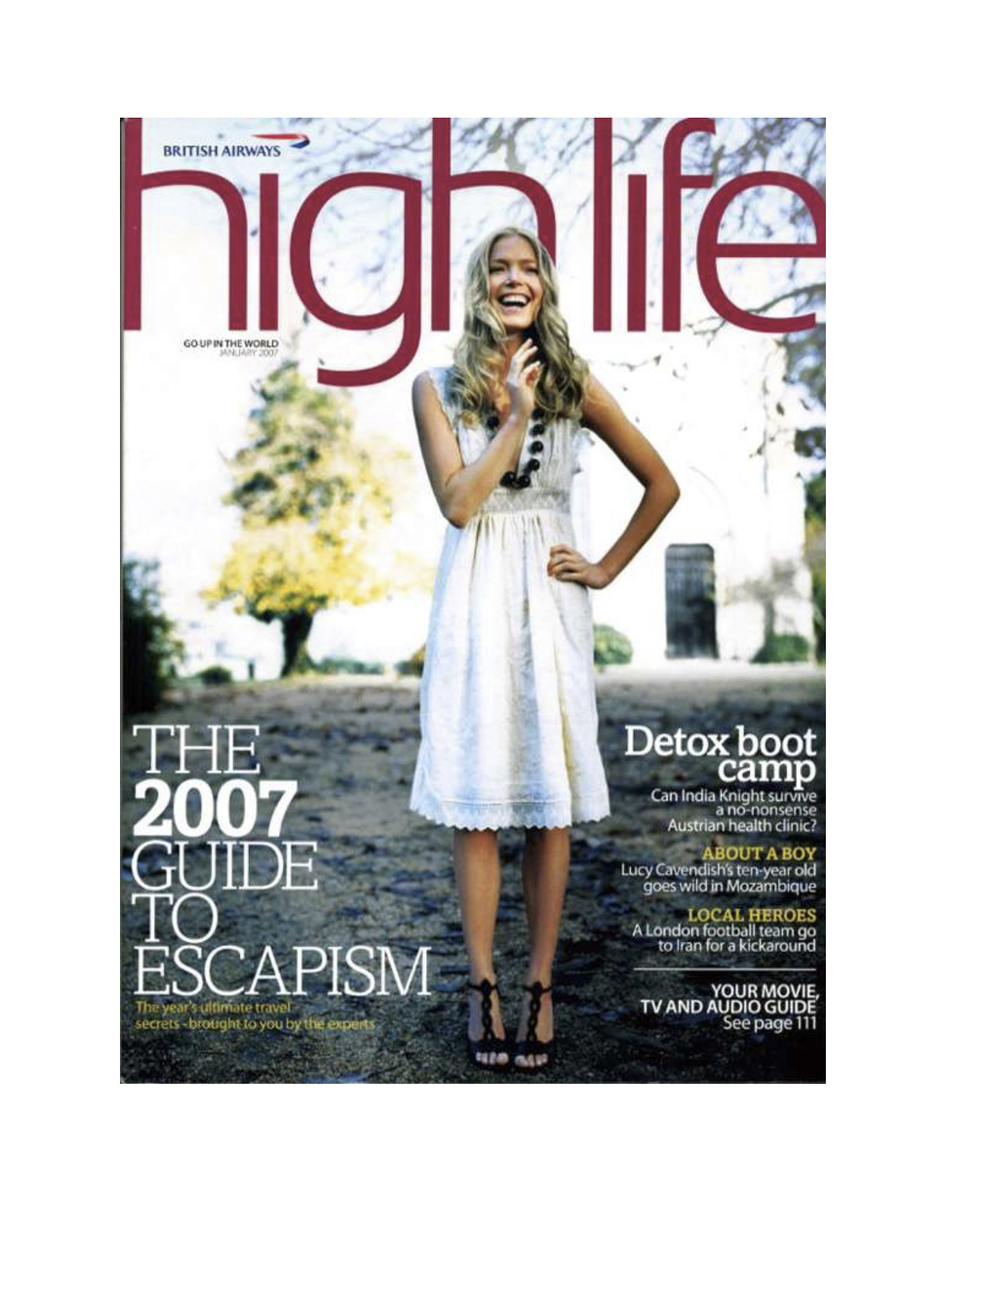 BA Highlife Magazine